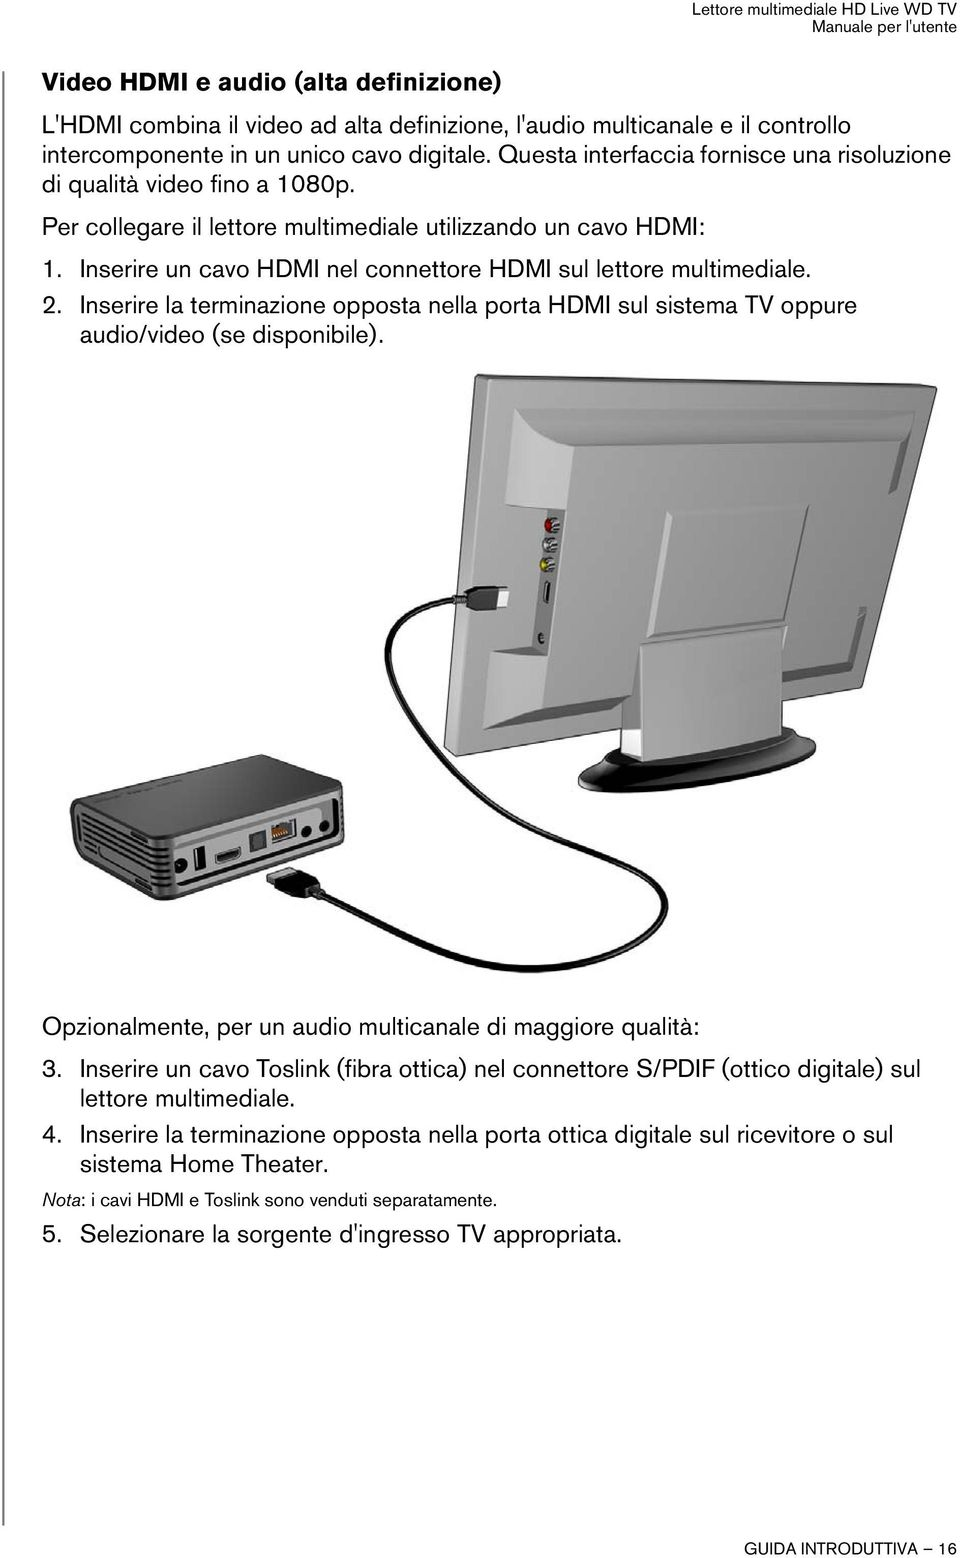 Lettore Multimediale Hd Live Wd Tv Pdf